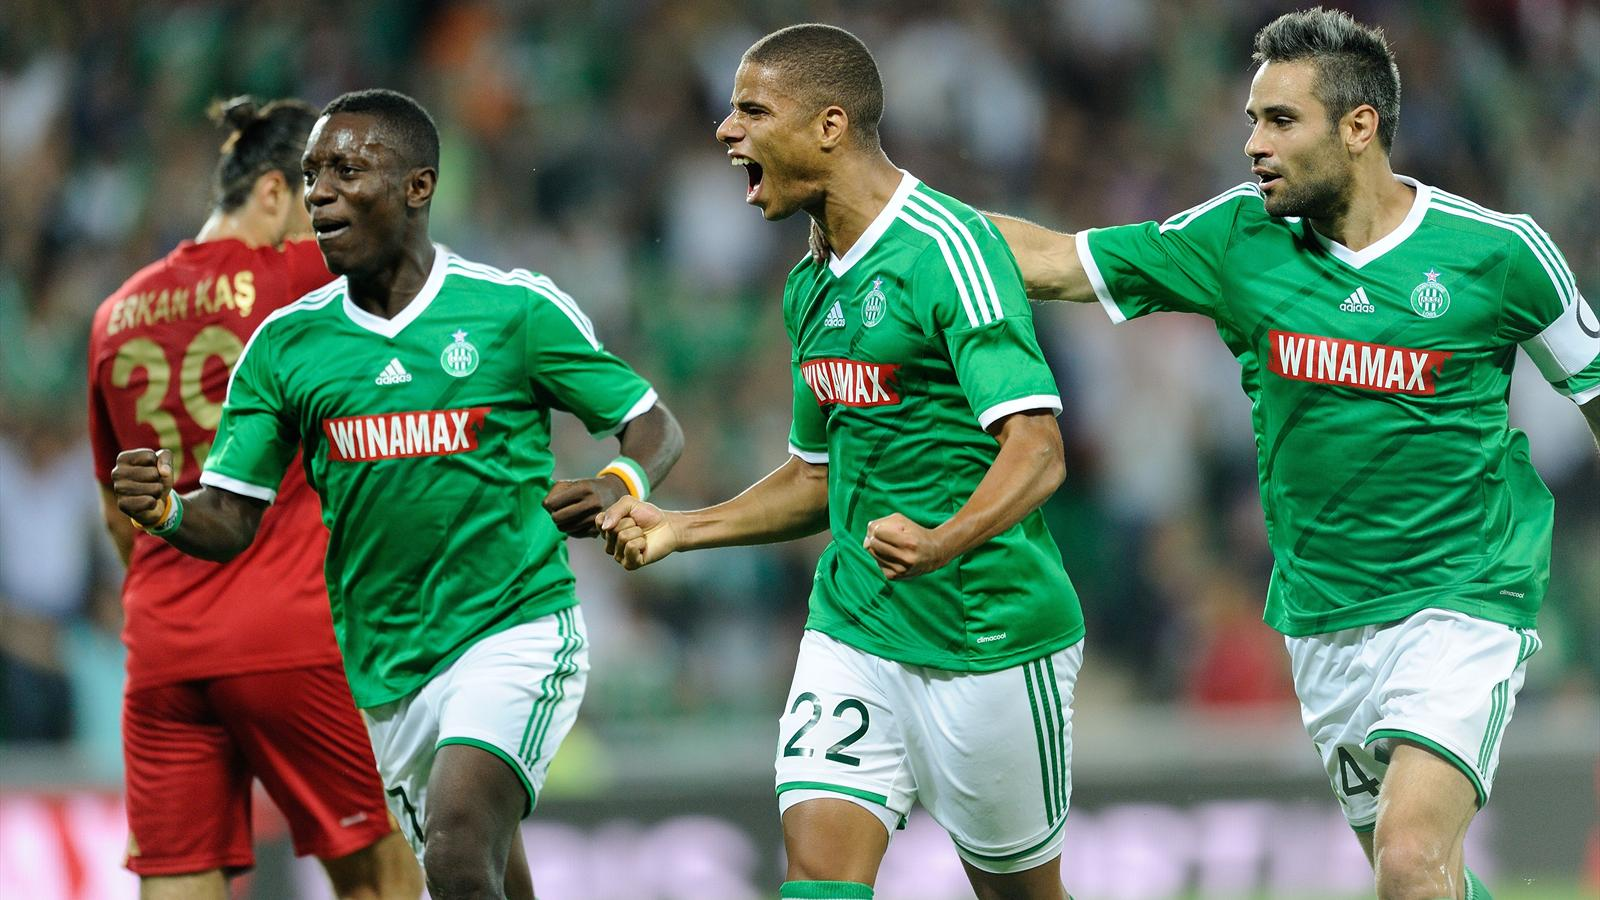 Match AS Saint-Etienne vs Dnipro en direct live streaming